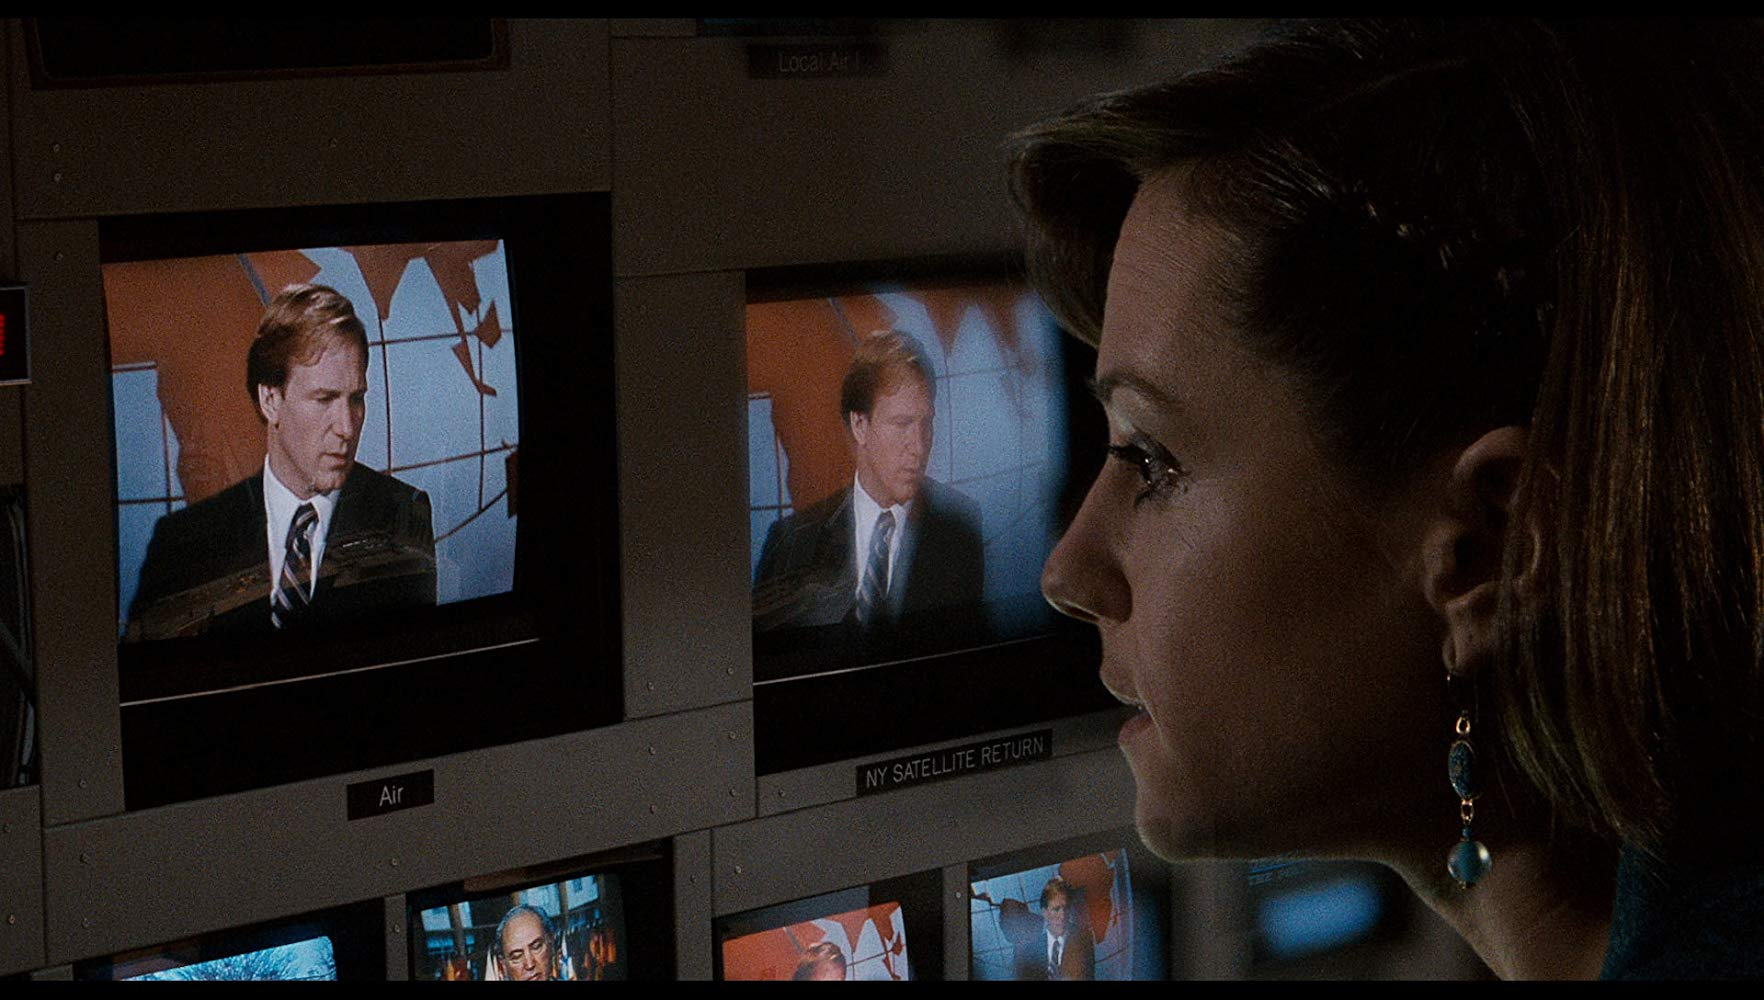 A close-up of Holly Hunter's face in a control room watching footage of anchor Willaim Hurt on several TV screens, from the movie Broadcast News.